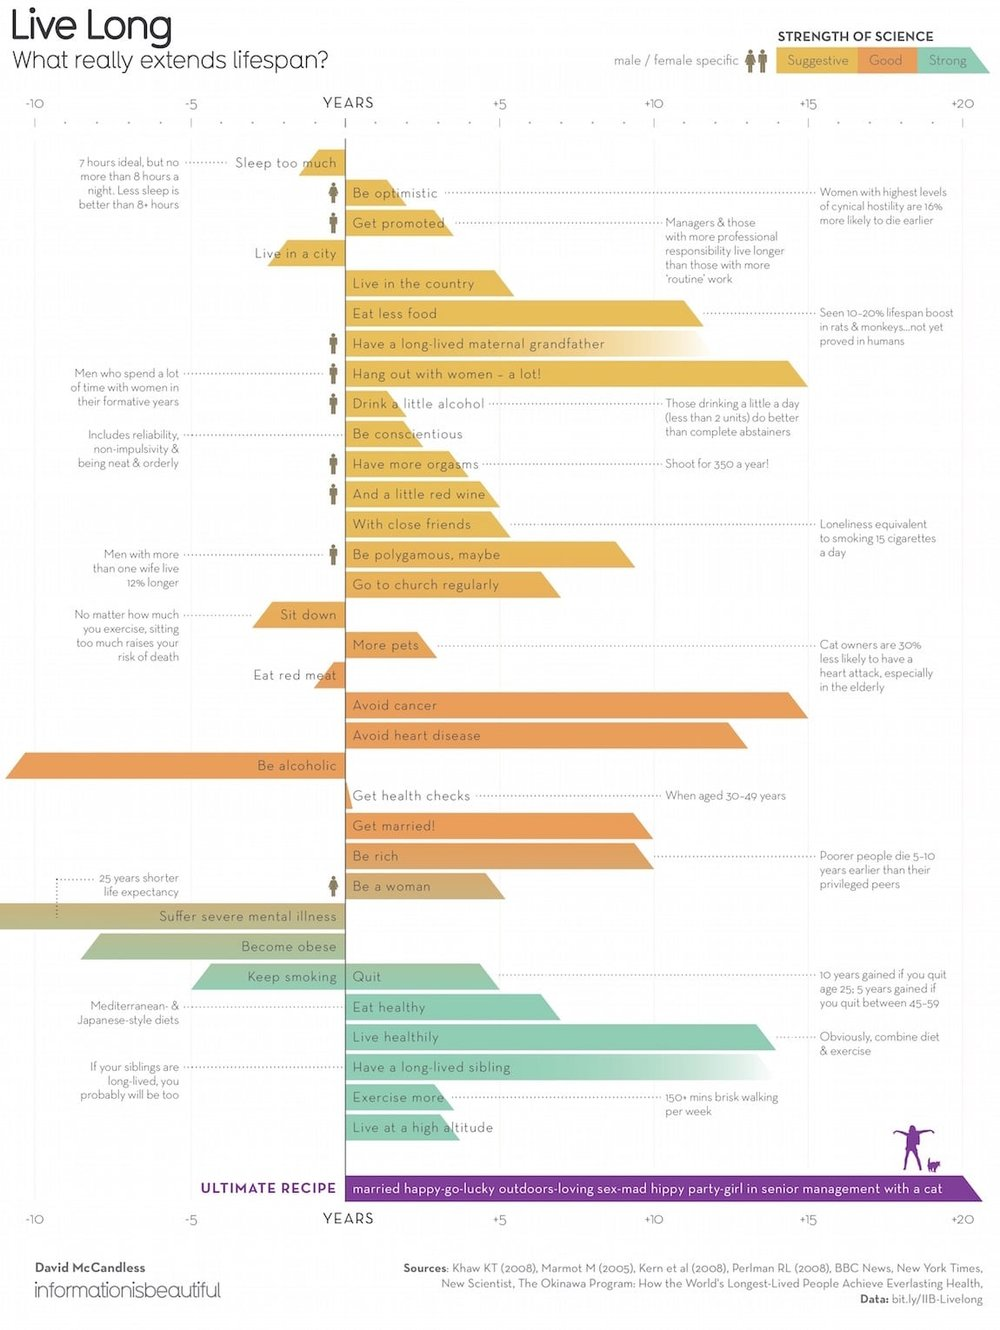 Live Long: What Really Extends Lifespan? infographic